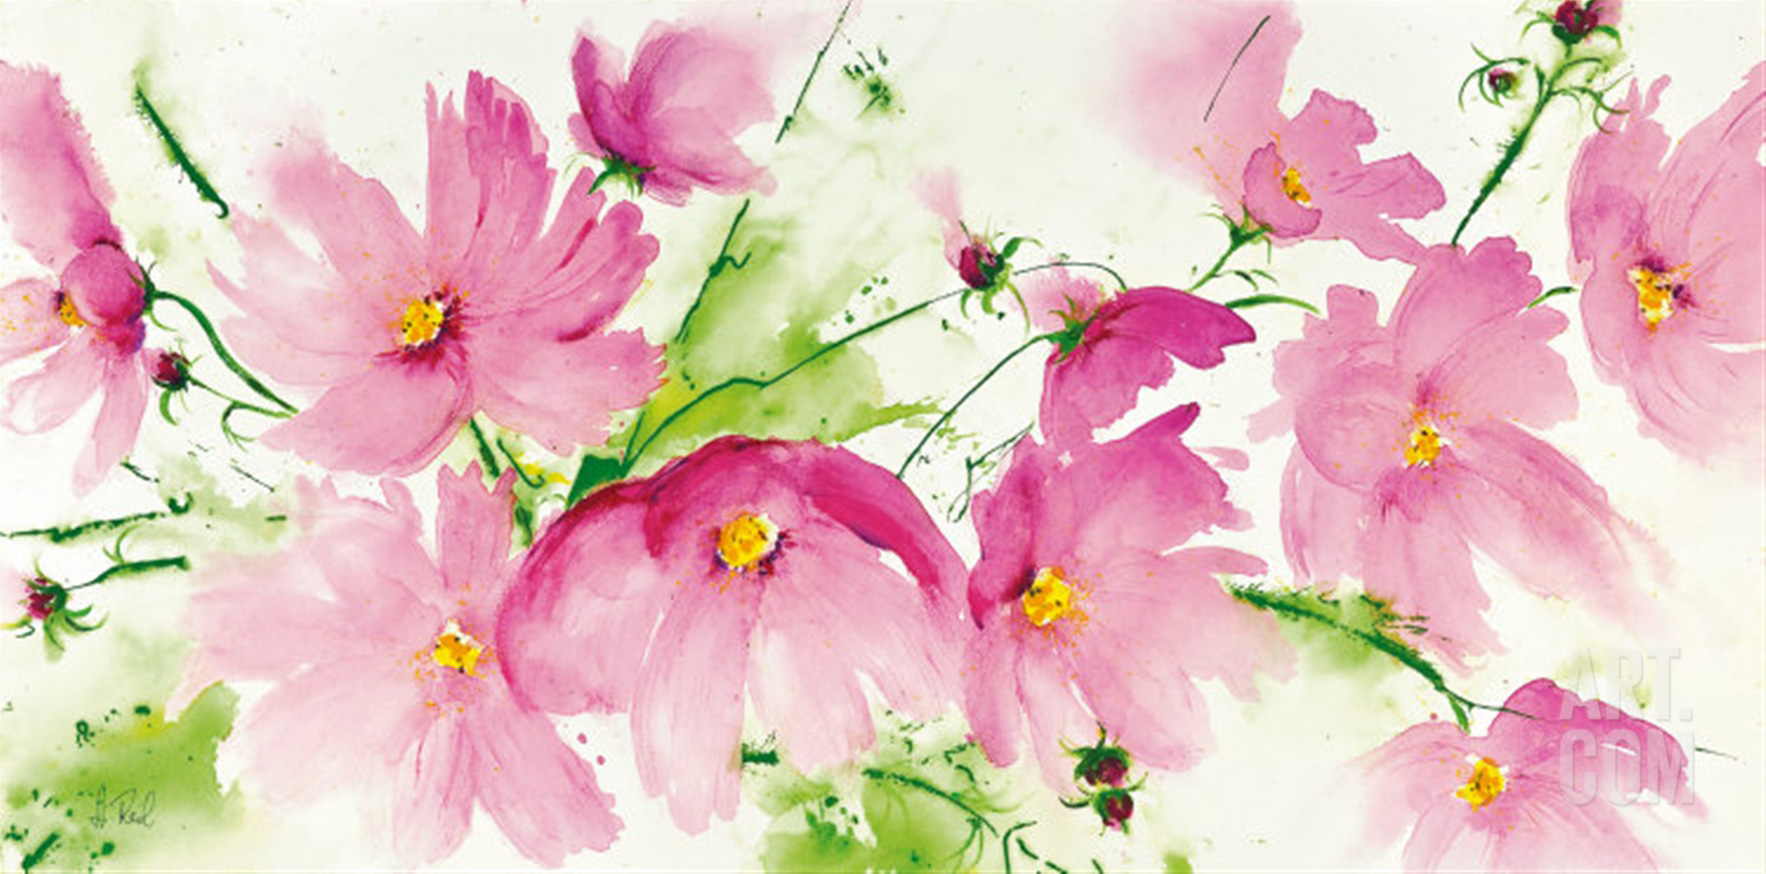 The perfect picture to hang over a couch or bed heidi reil s rosa